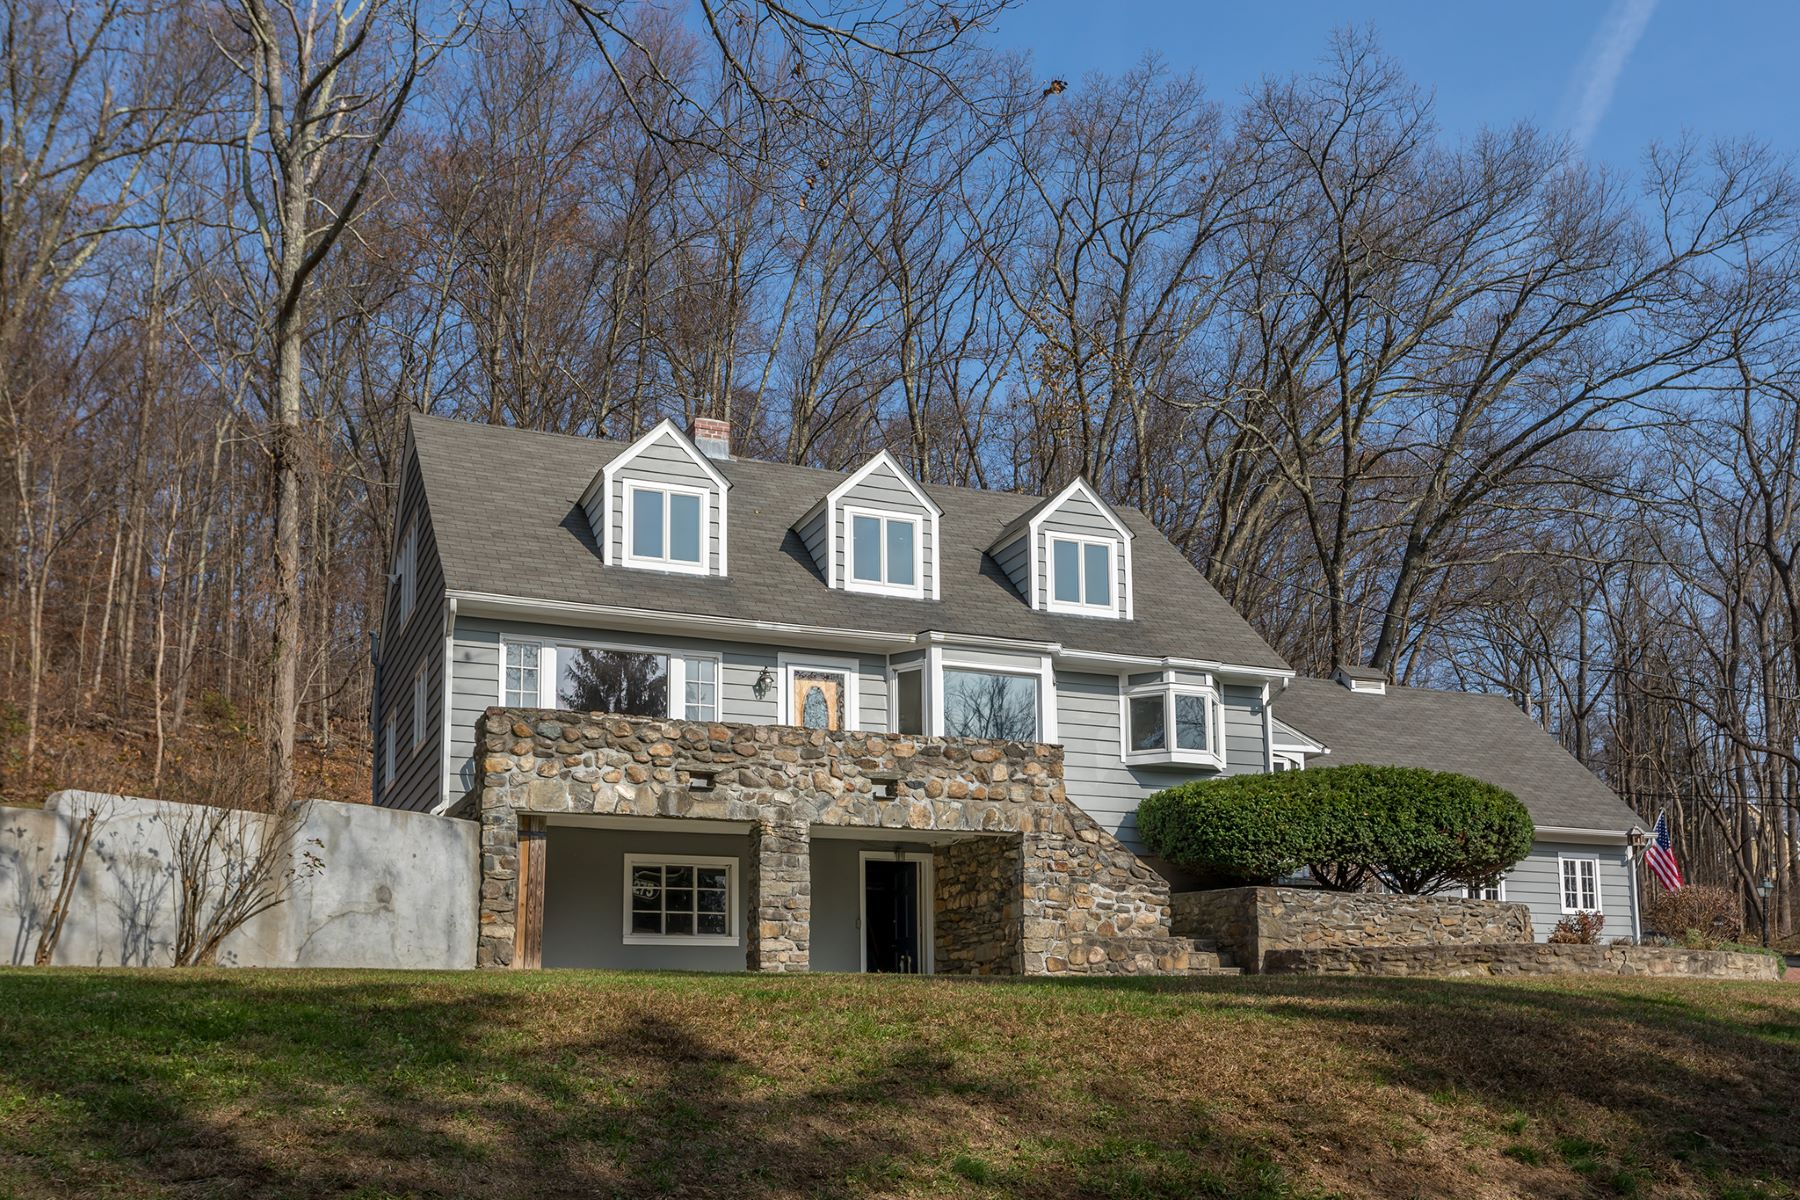 Single Family Homes for Active at Charming Cape 26 Cedar Hill Rd Bridgewater, Connecticut 06752 United States